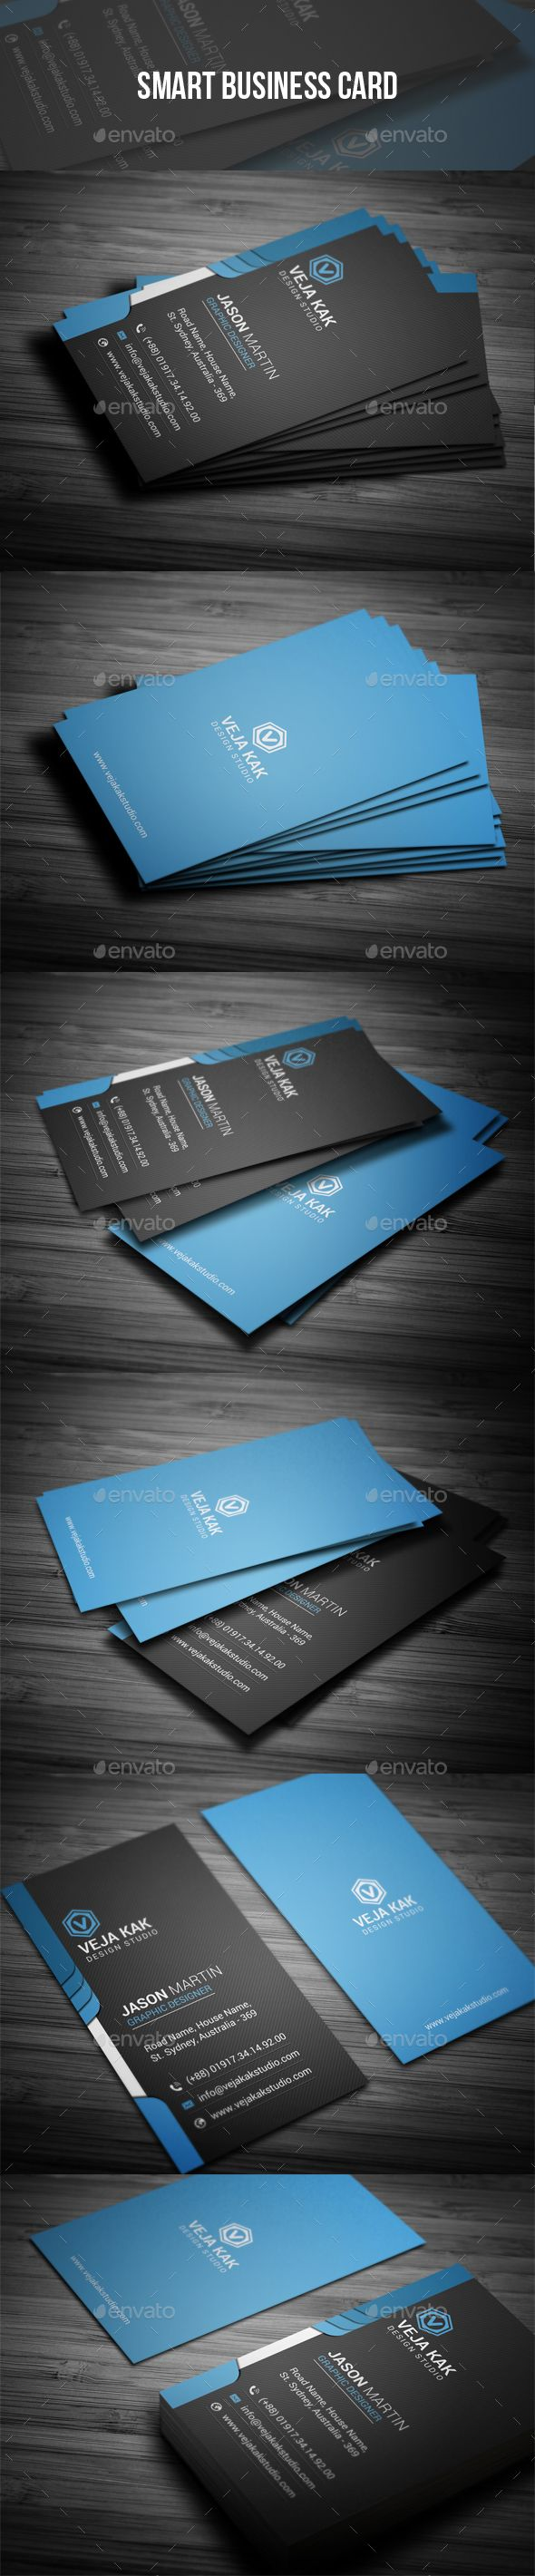 Smart Business Card | Business cards, Business and Card templates